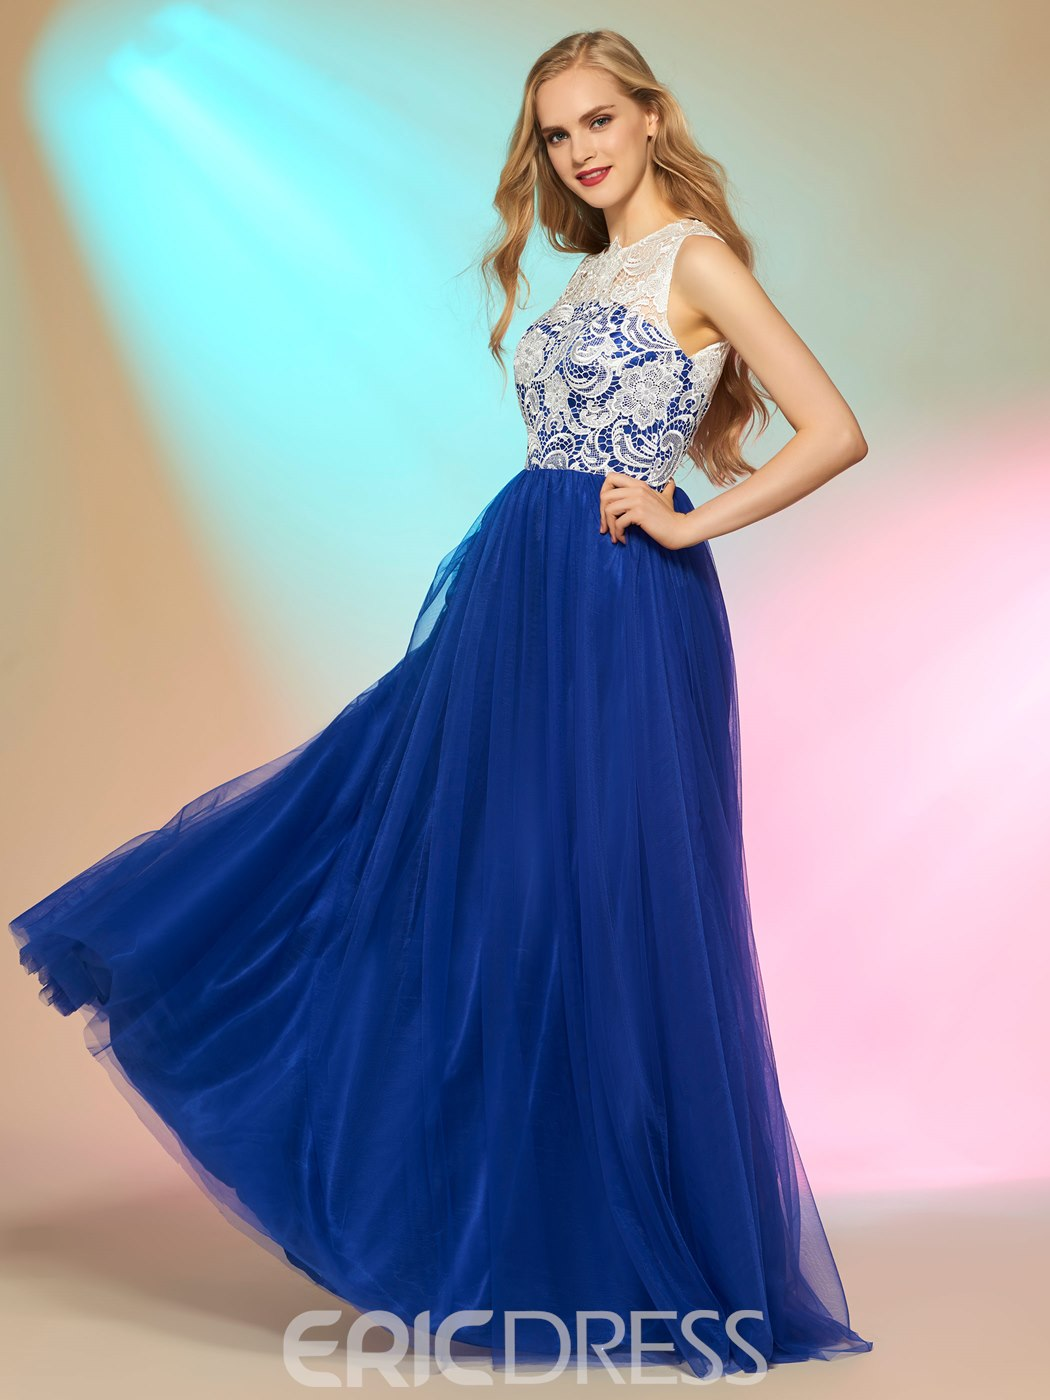 Ericdress A Line Contrast Color Long Sleeve Prom Dress